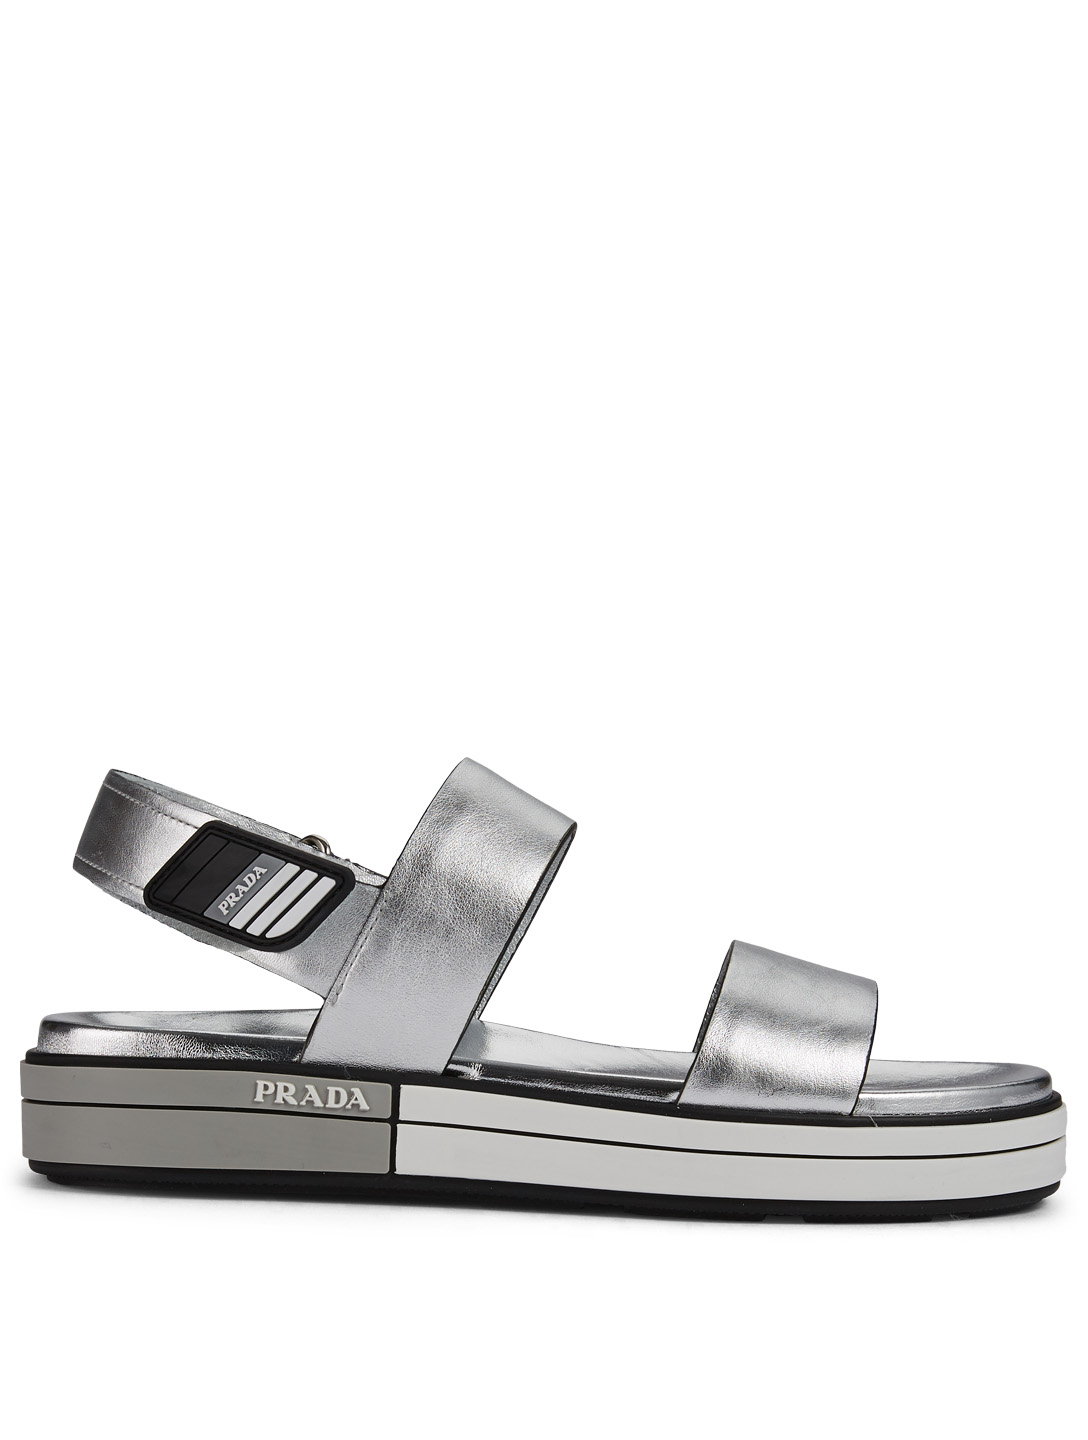 69e9aa78dbe PRADA Metallic Leather Sandals Women s Silver ...